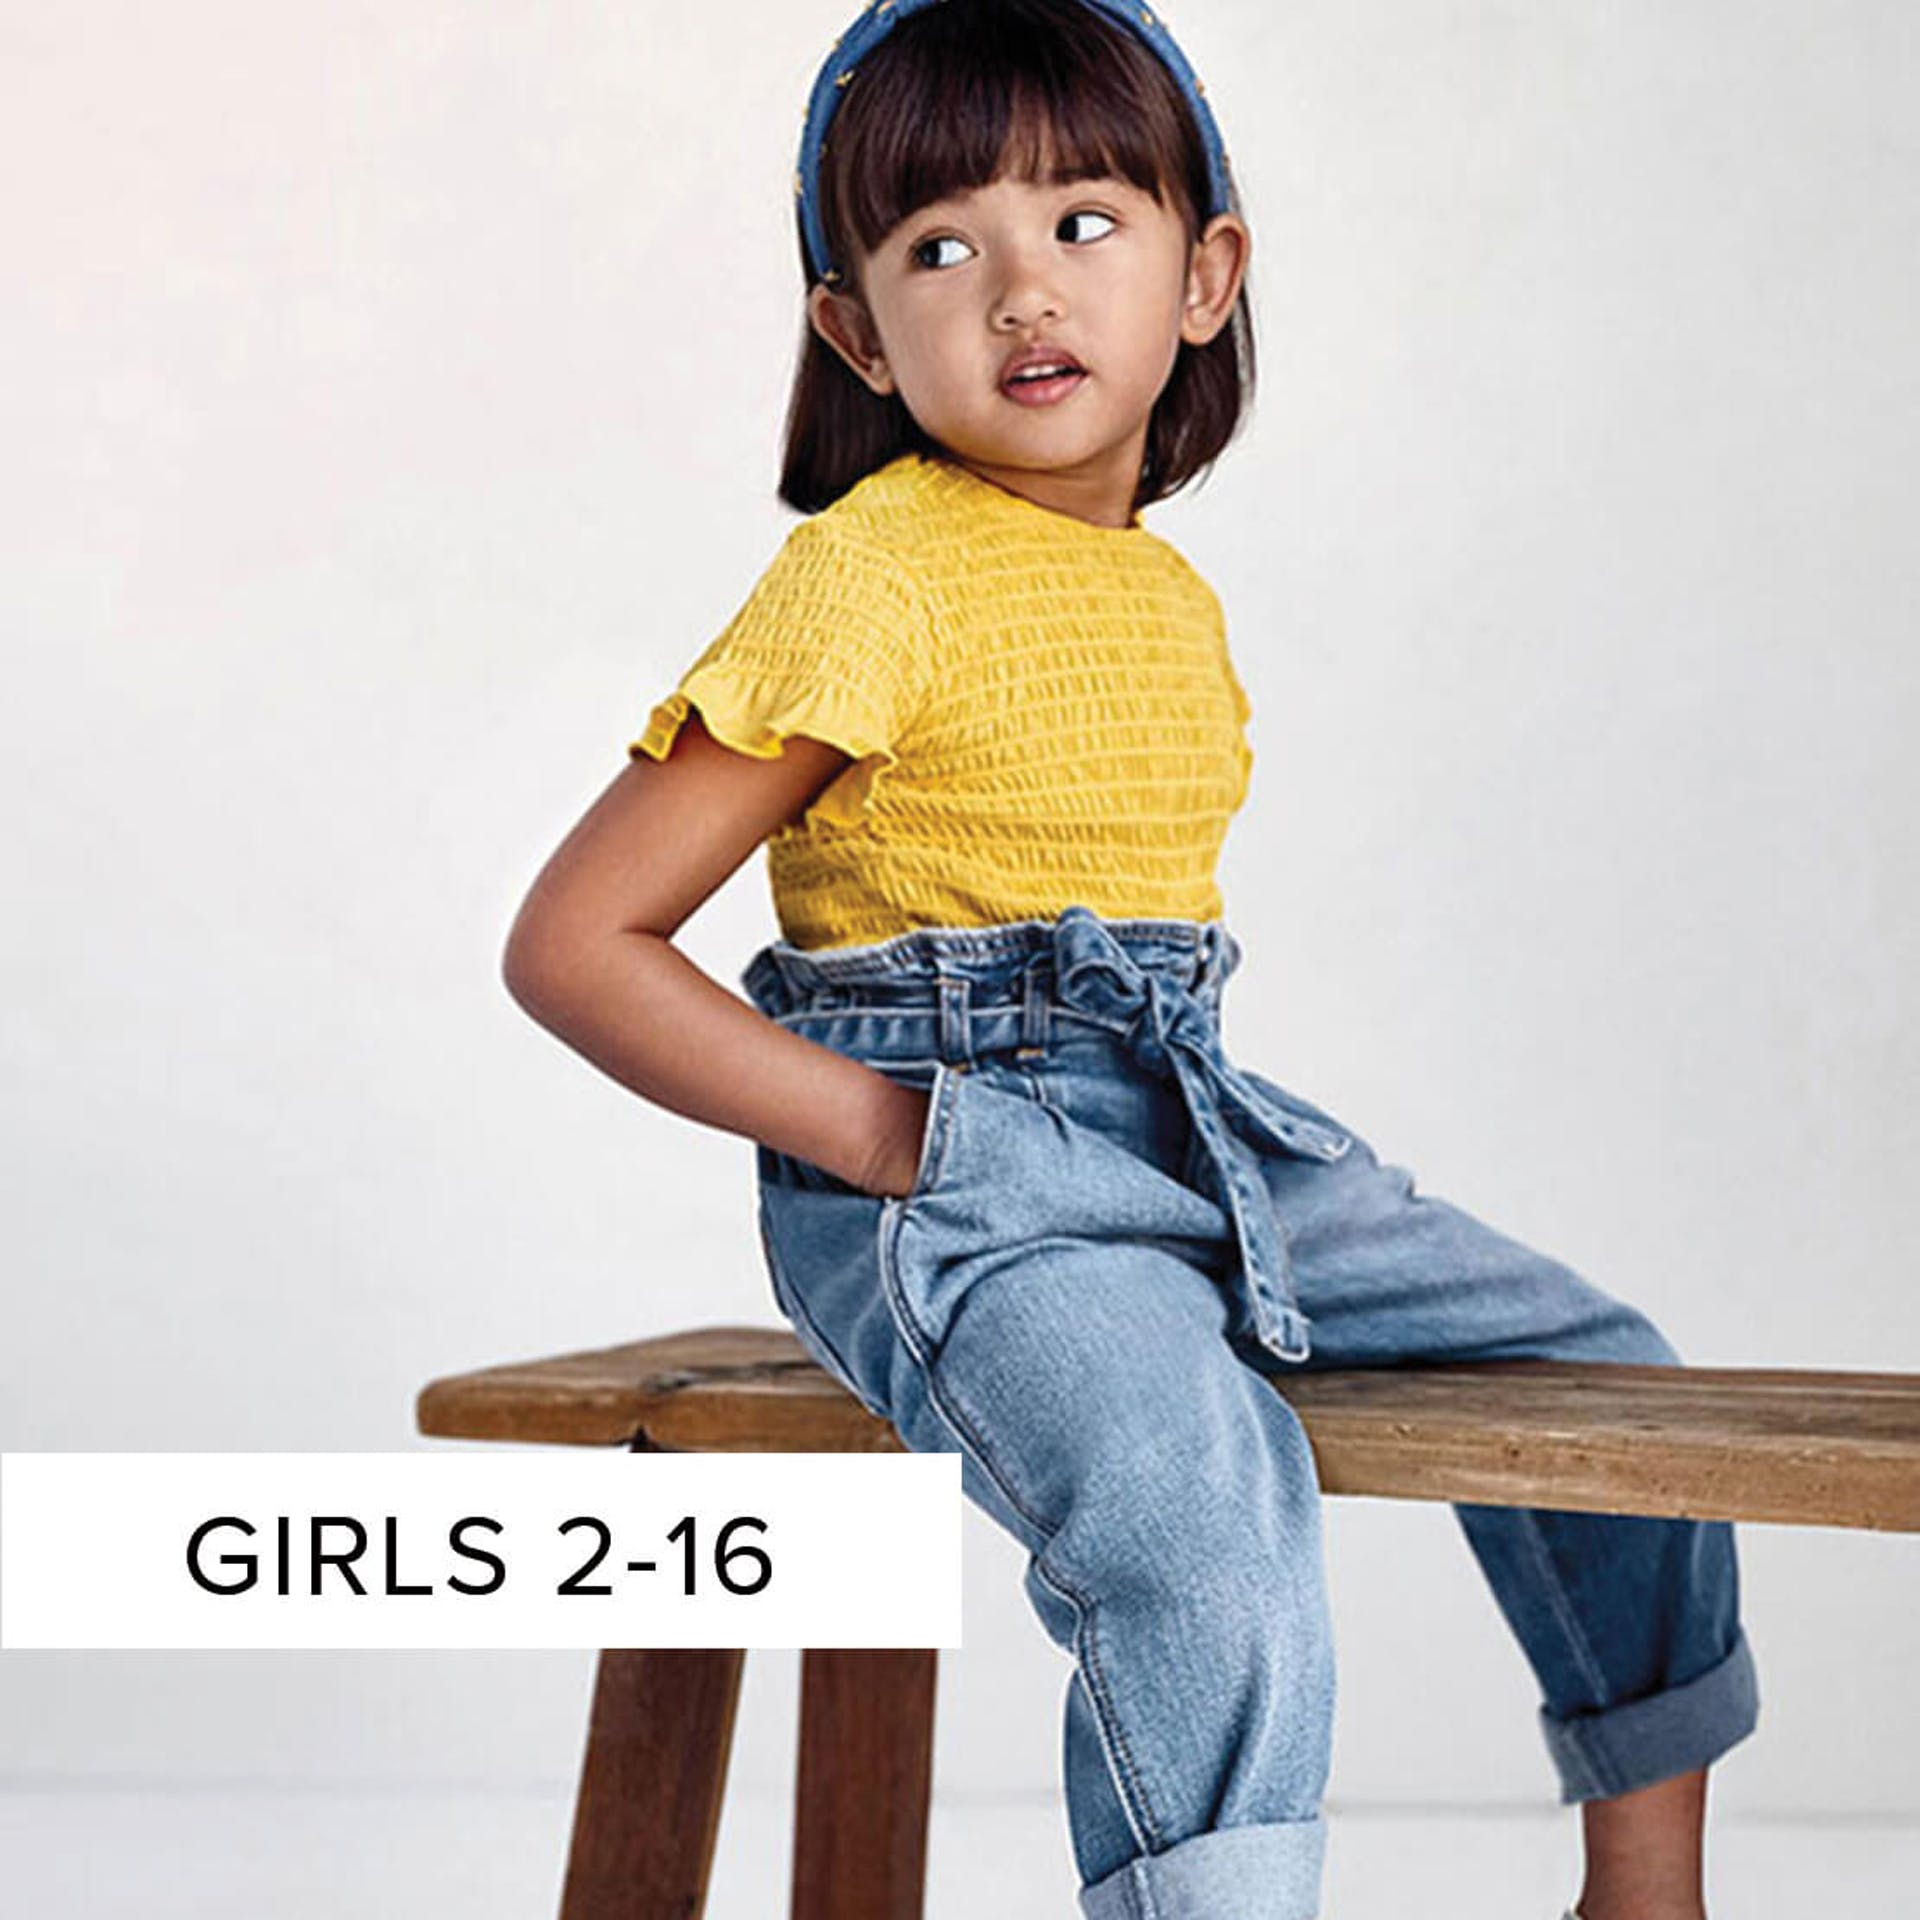 girls clothing aged 2 to 16 years of age